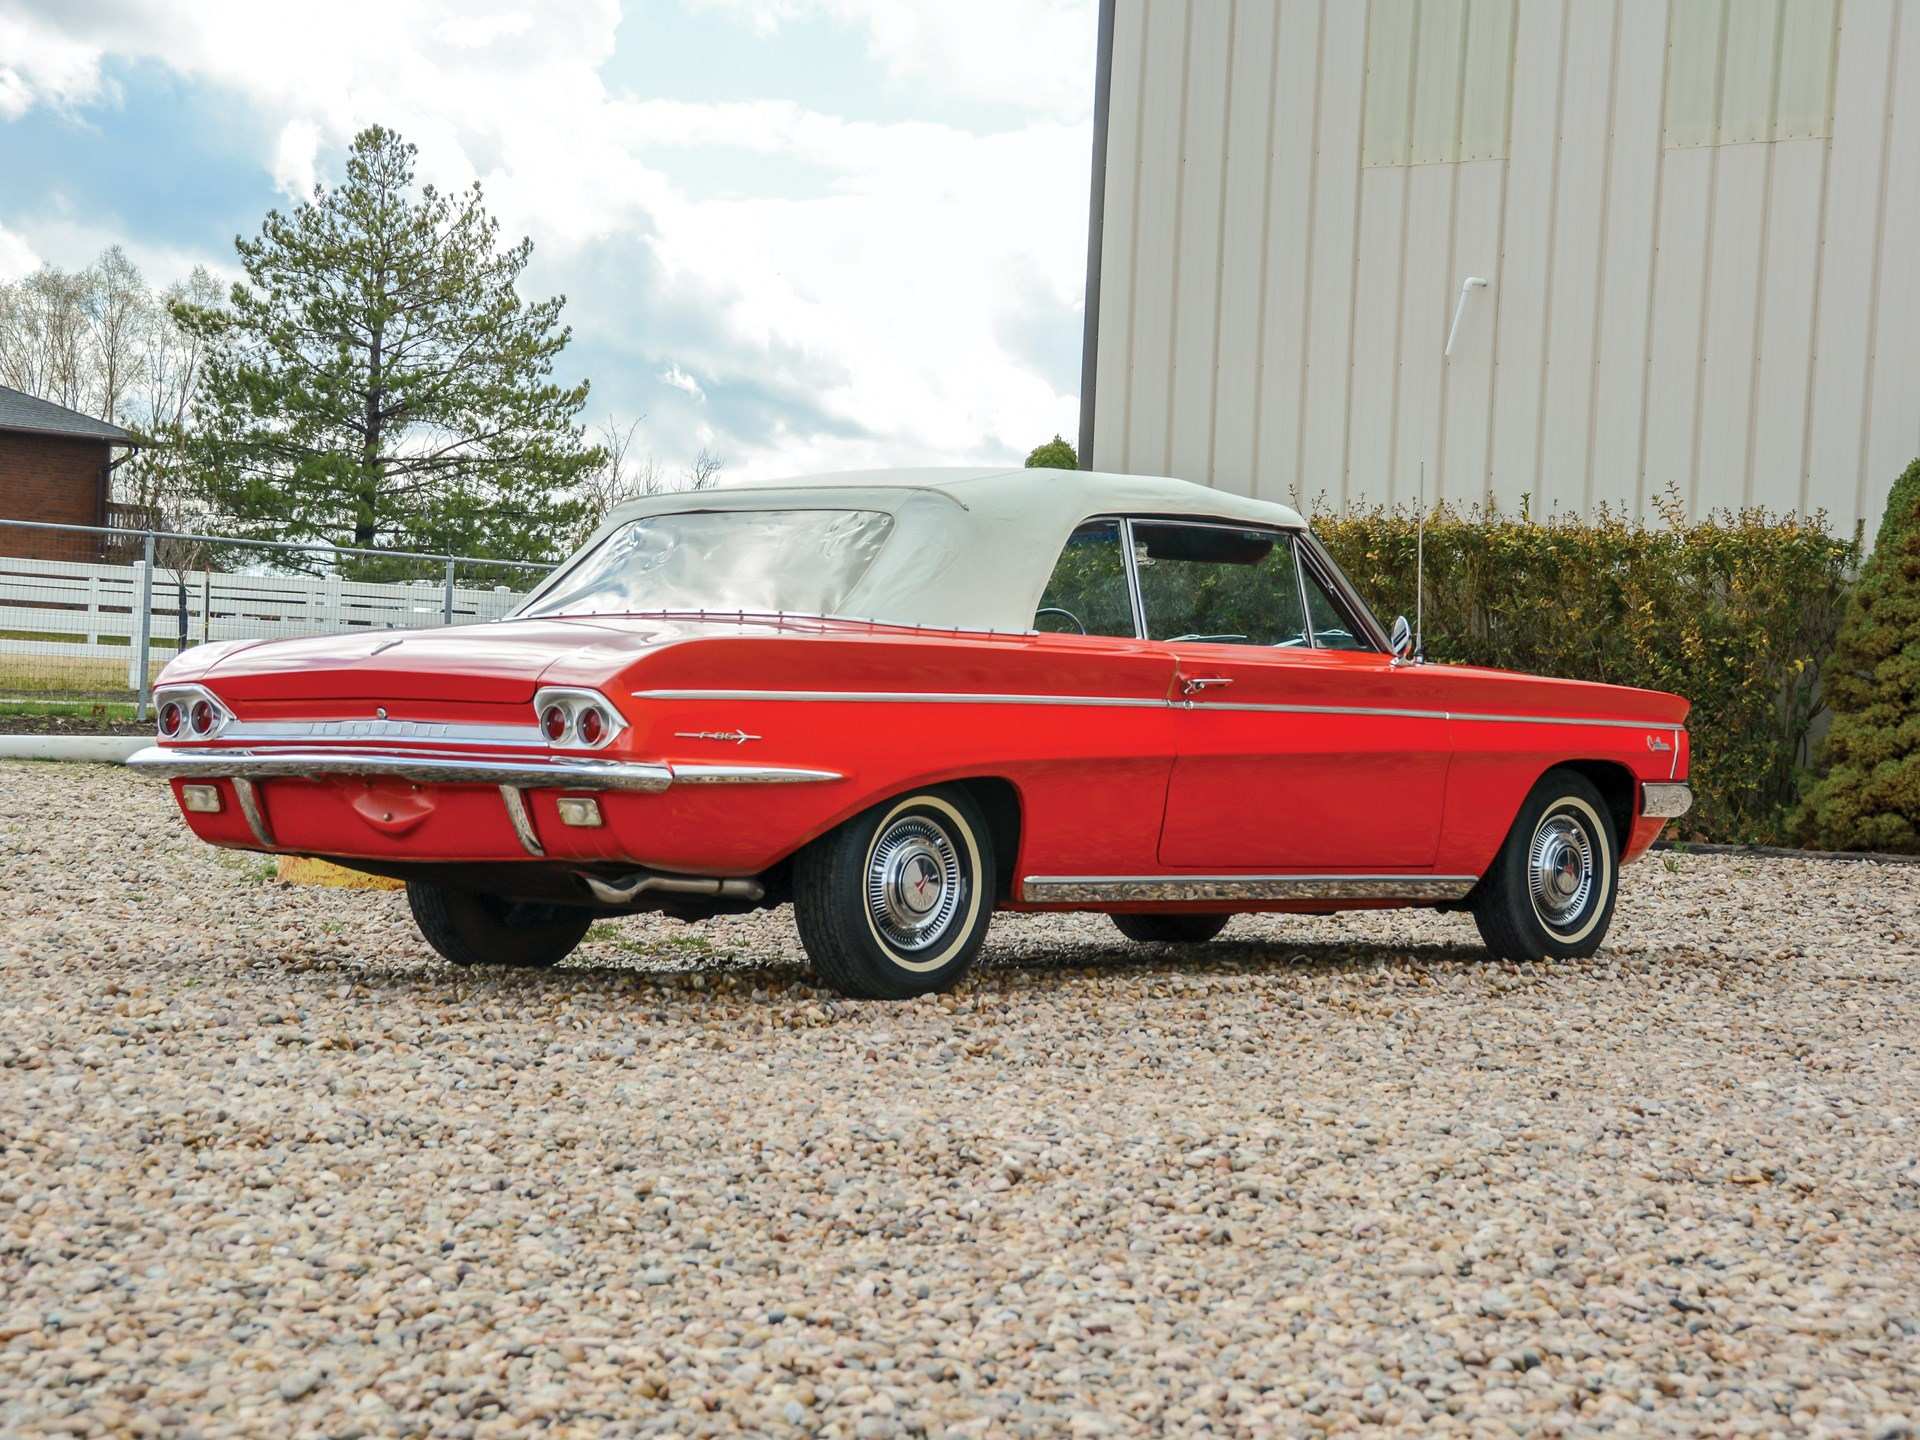 1962 Oldsmobile F-85 Cutlass Convertible